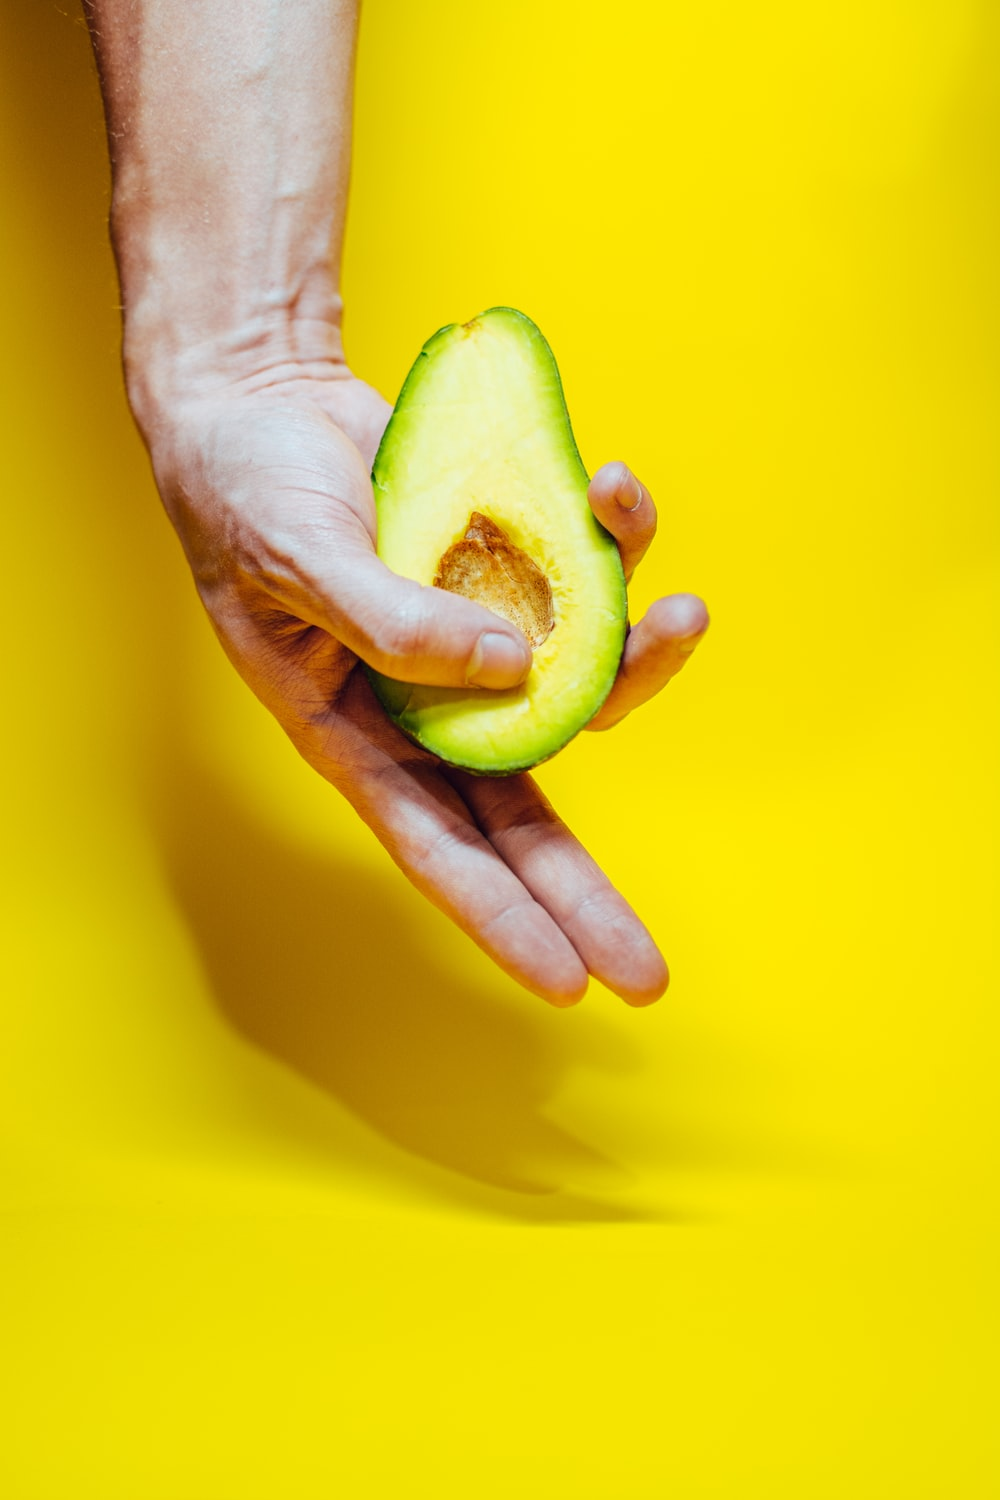 person holding green fruit on yellow surface